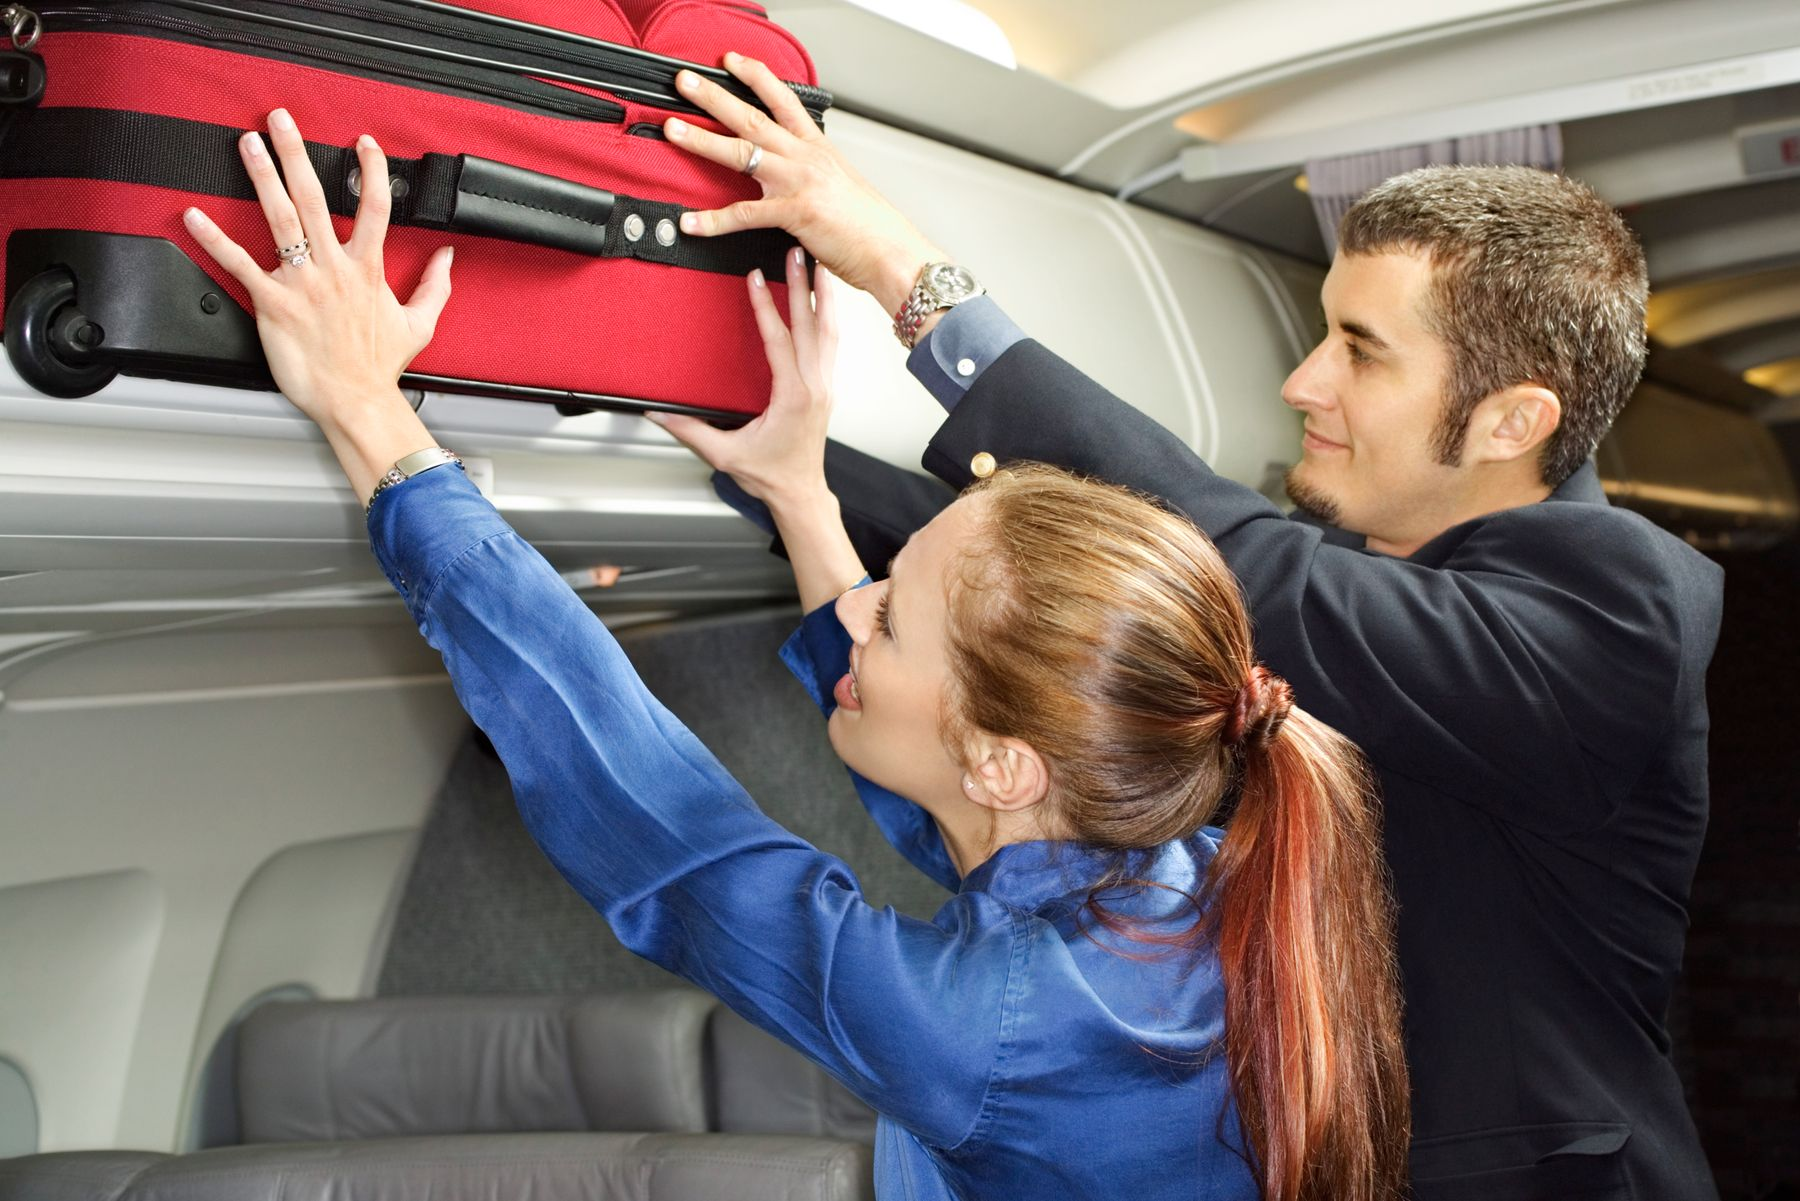 Cabin baggage